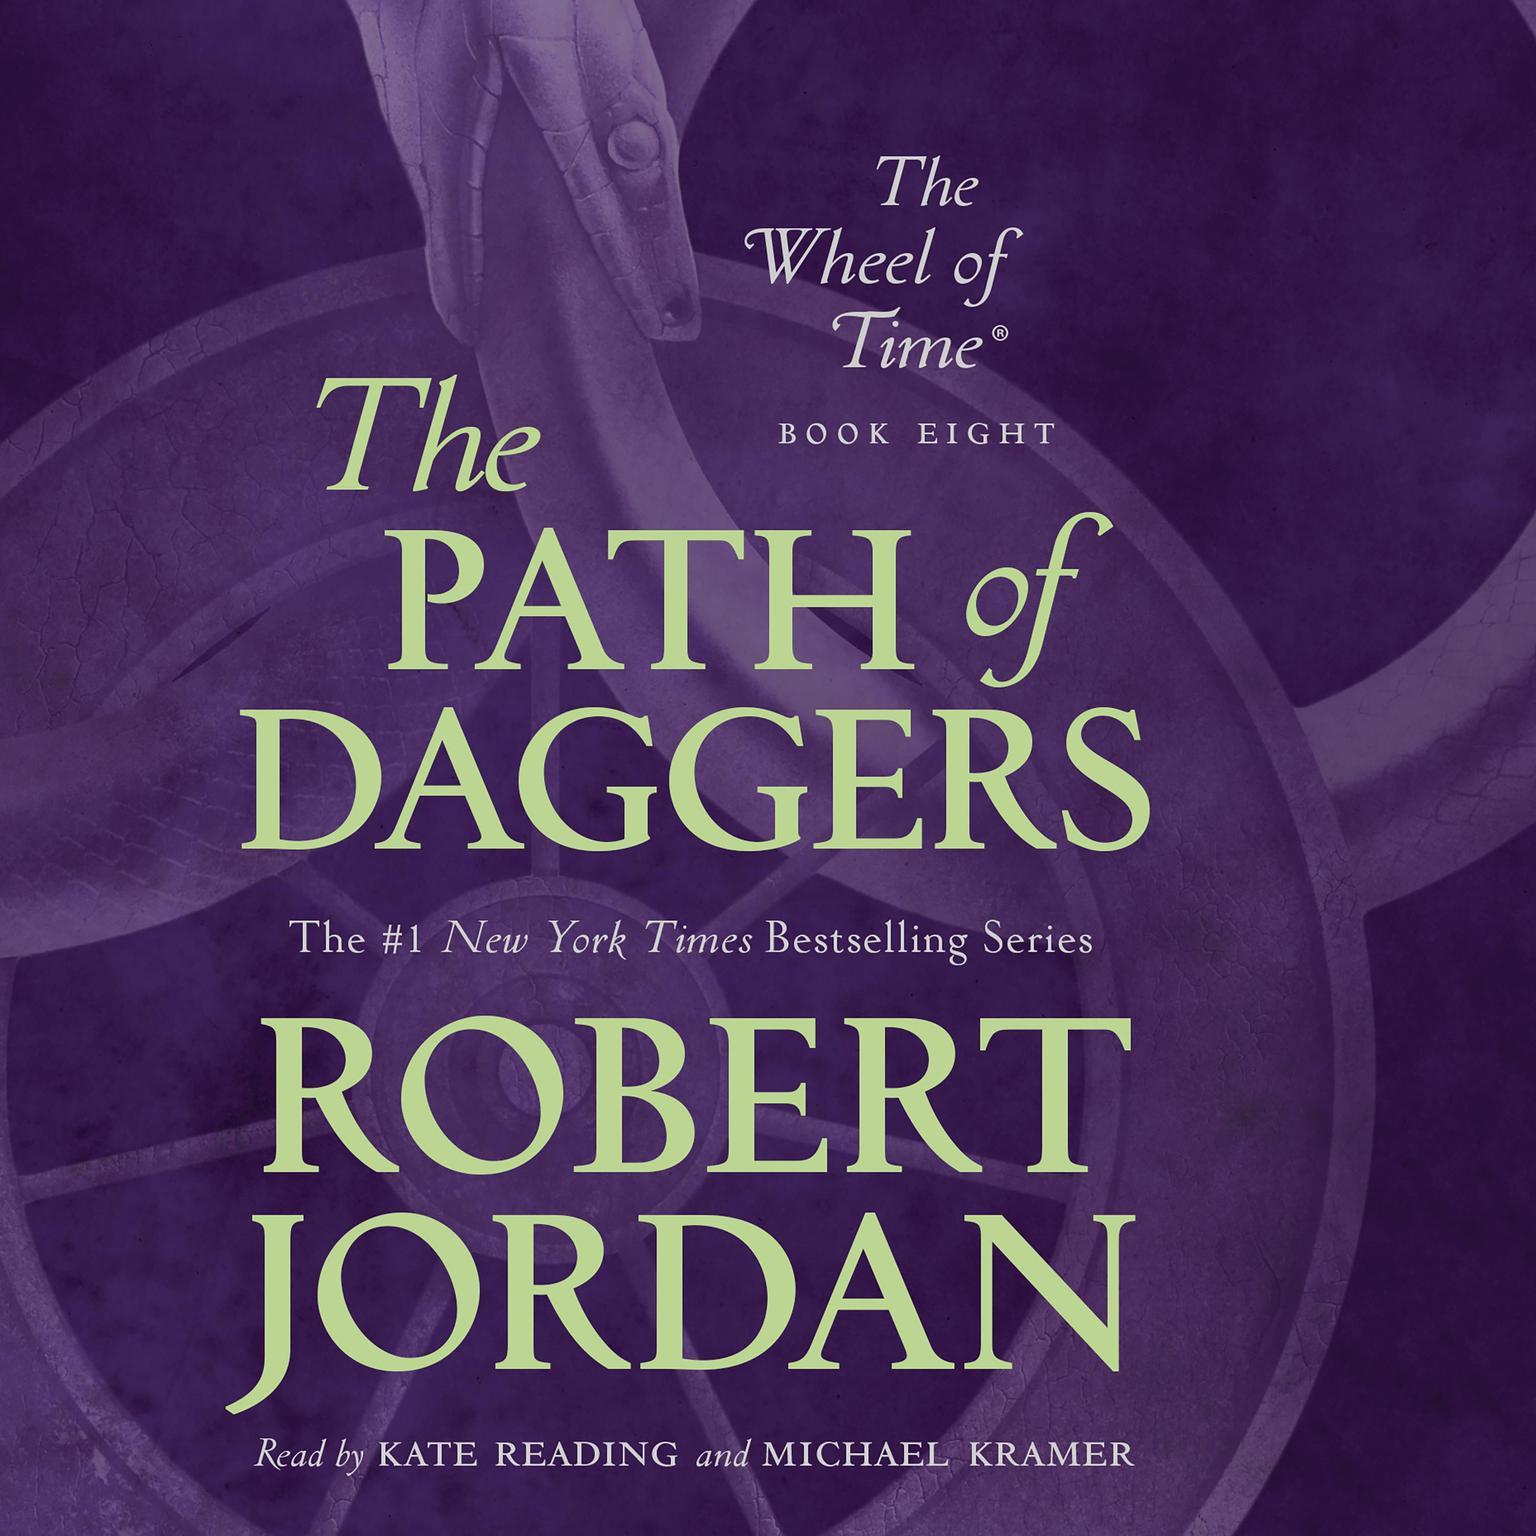 Printable The Path of Daggers: Book Eight of 'The Wheel of Time' Audiobook Cover Art